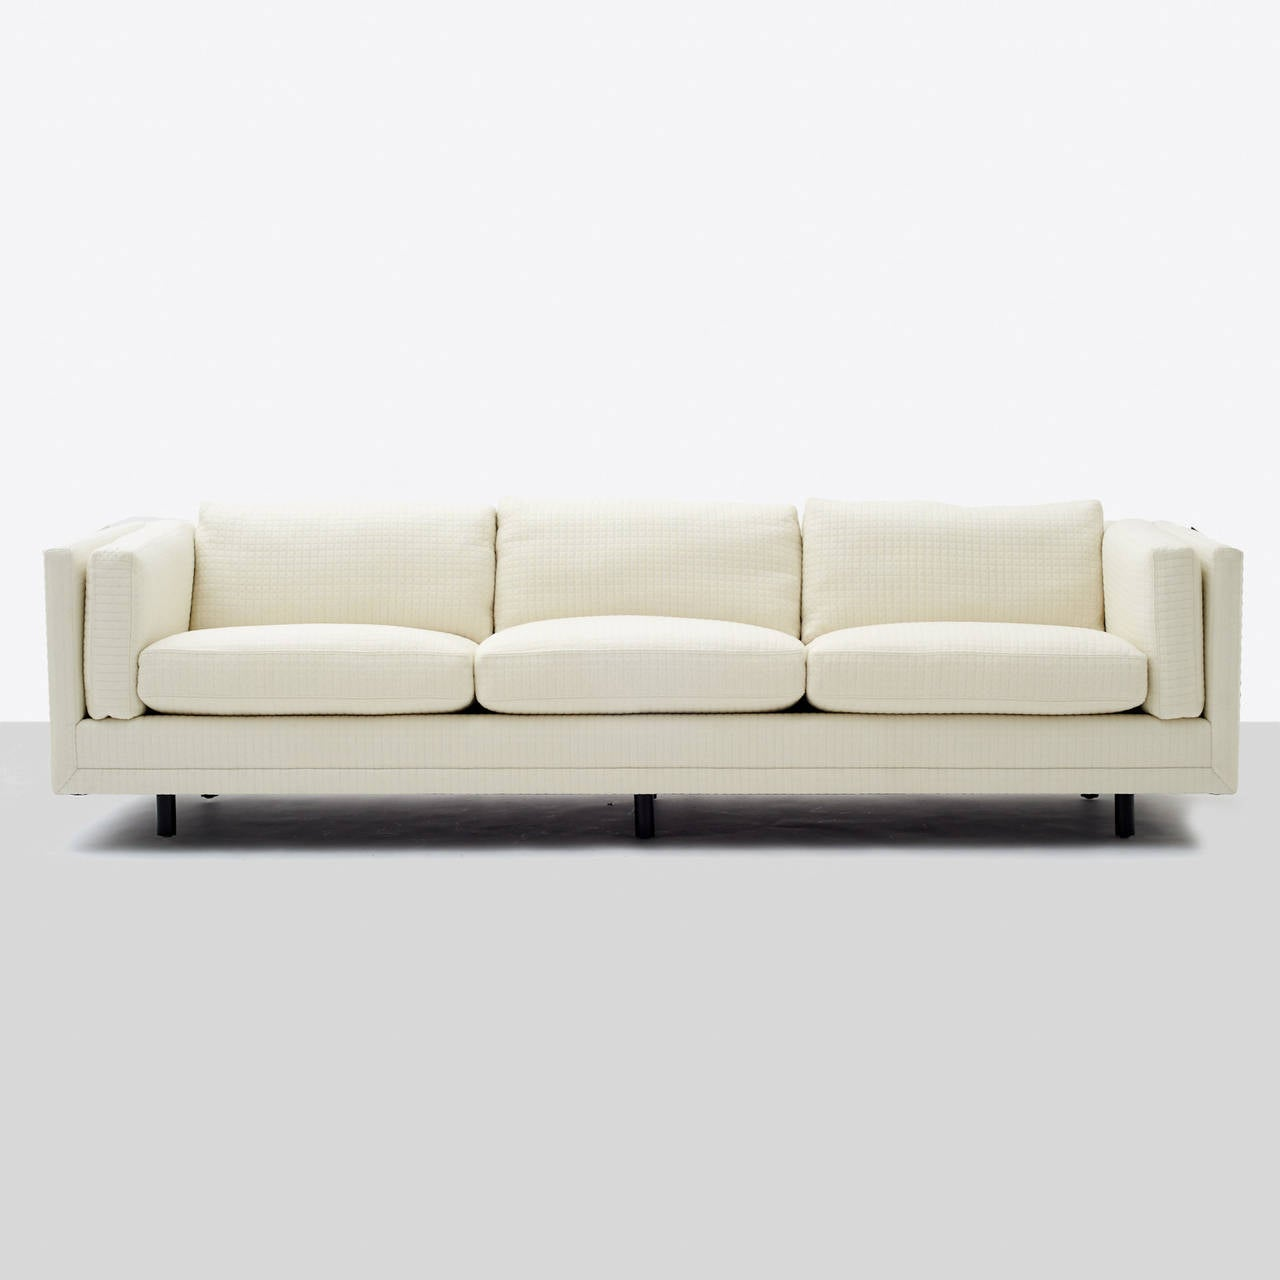 harvey probber tuxedo sofa for sale at 1stdibs. Black Bedroom Furniture Sets. Home Design Ideas